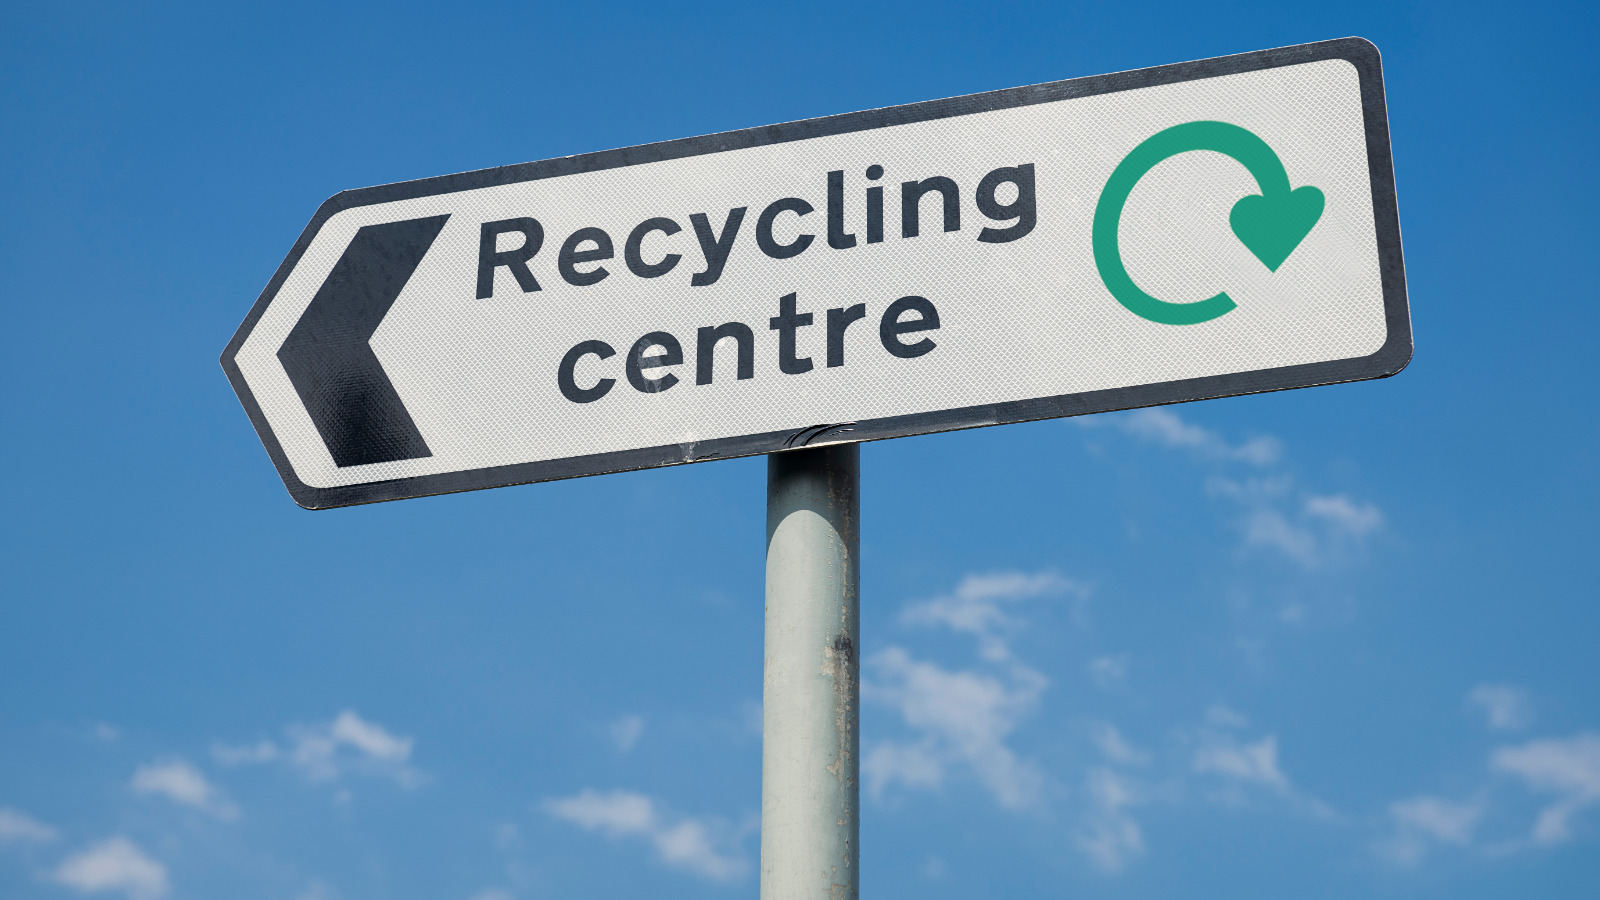 Recycling Centre road sign